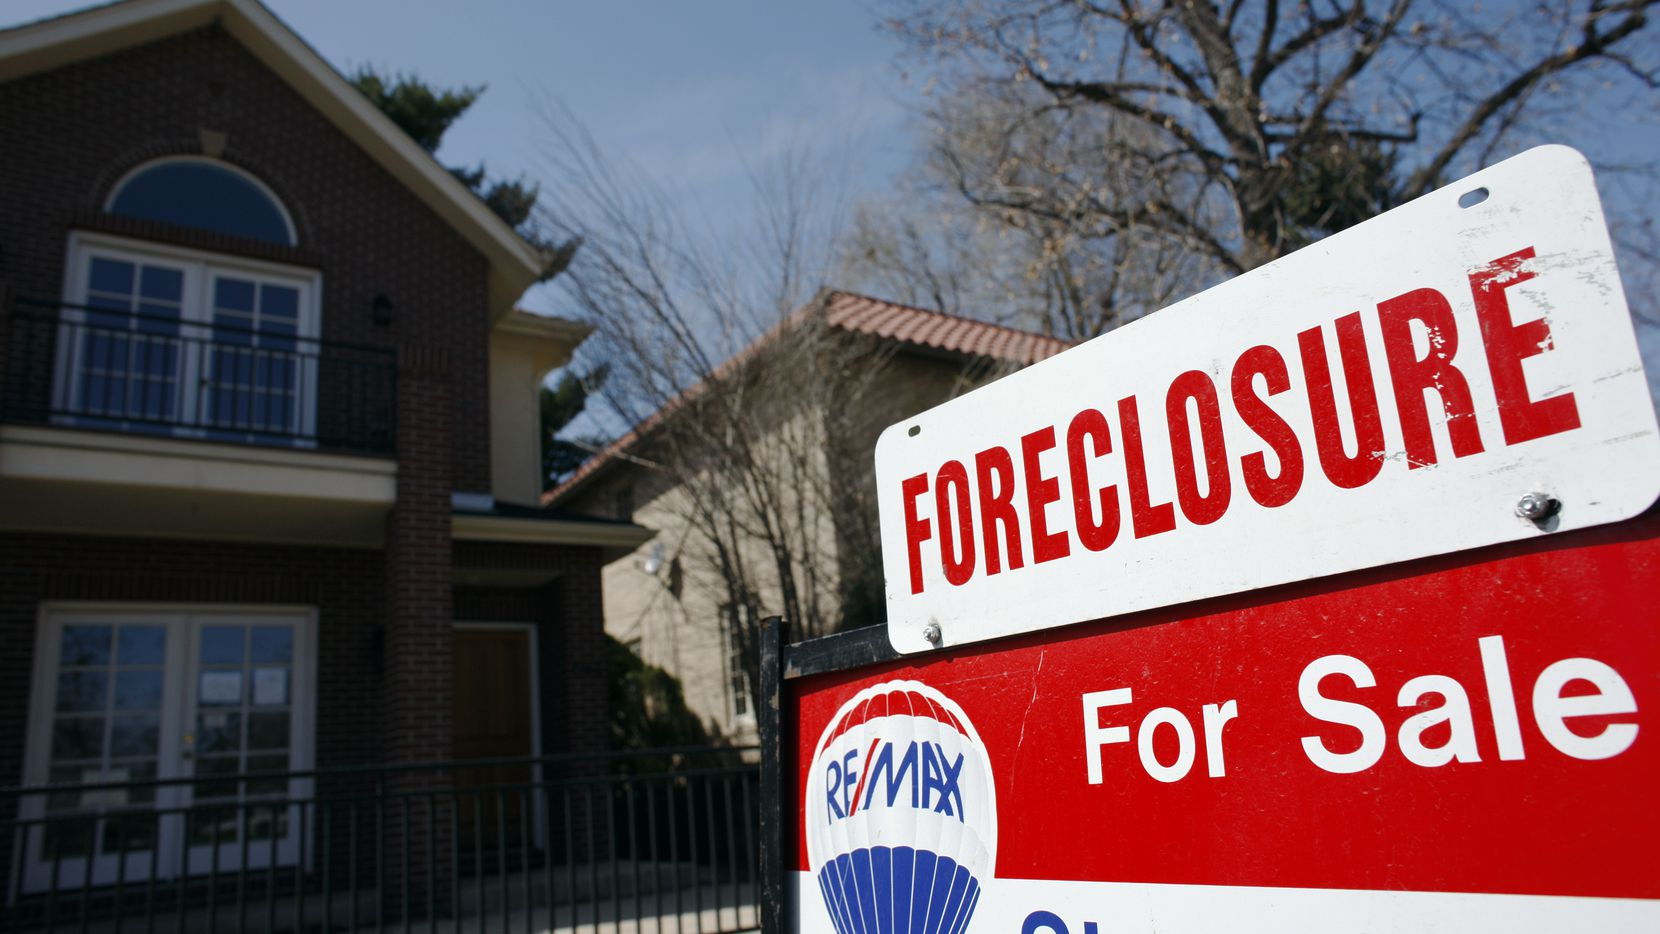 Dallas-area foreclosures are way down due to the coronavirus pandemic, but two North Texas men who lost their homes to lenders are fighting back in court.